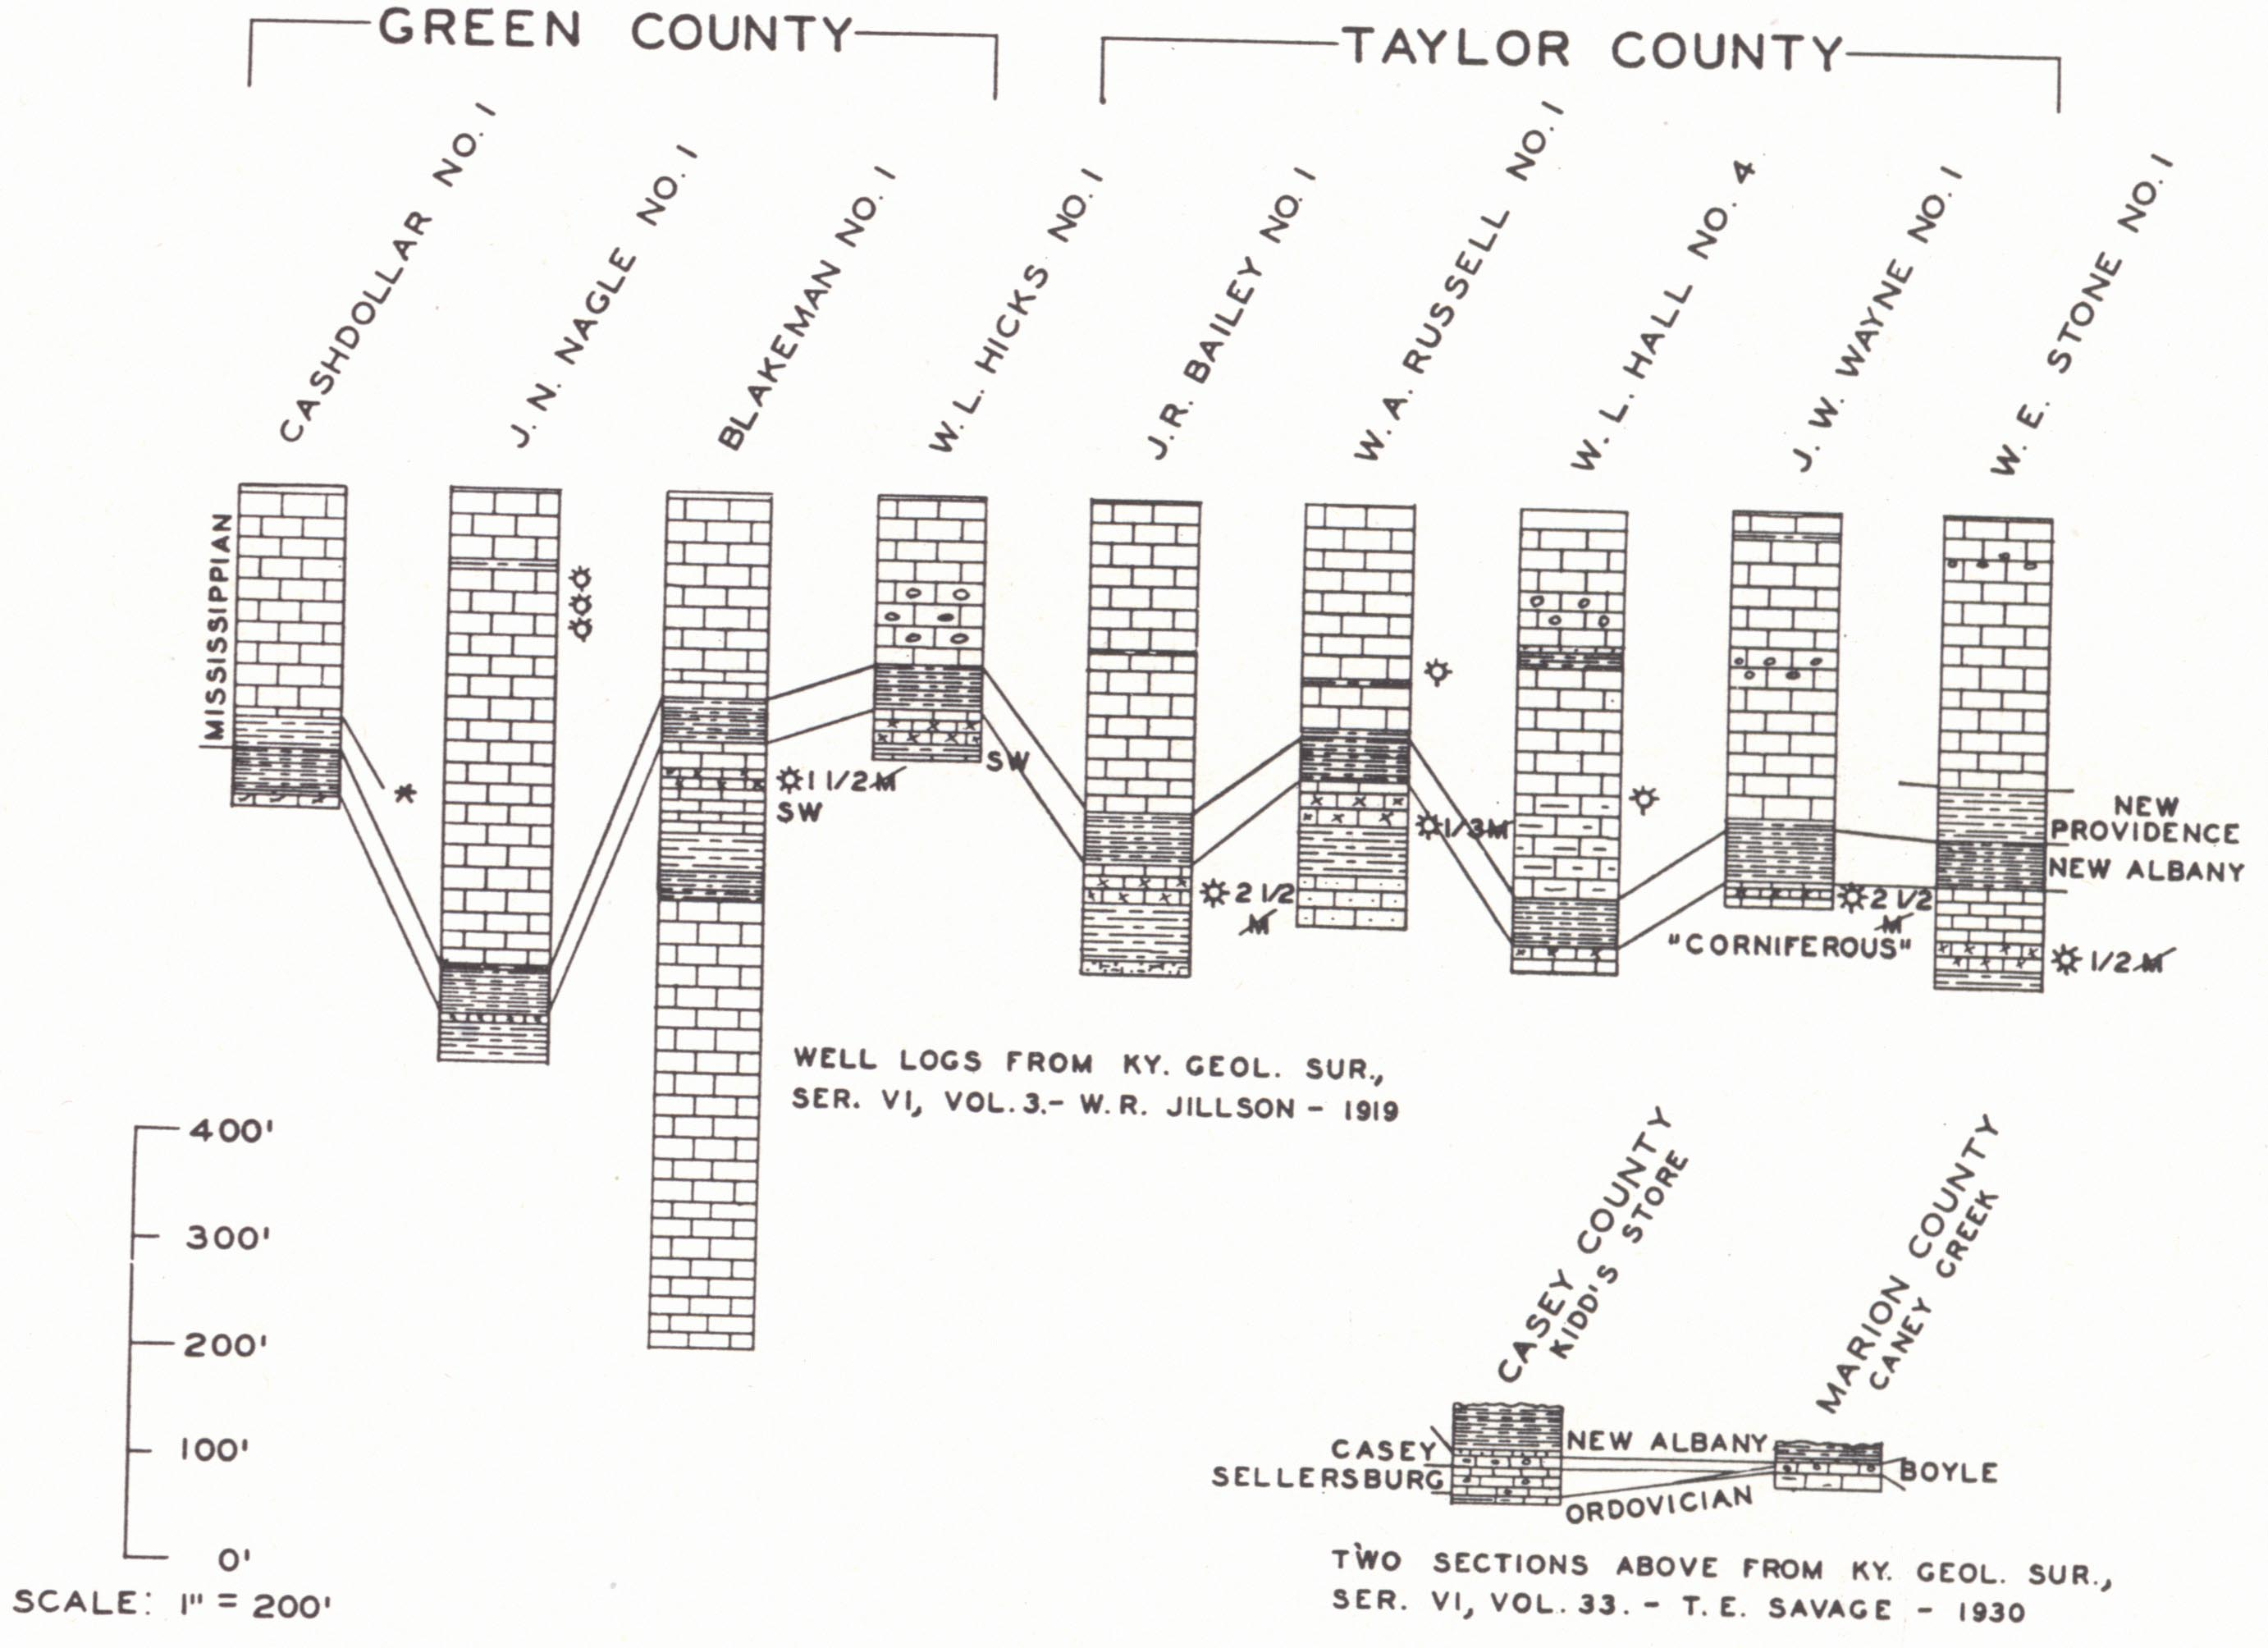 Geology Of Kentucky Chapter 23 Petroleum And Natural Gas Well Submersible Pump Moreover Wiring Diagram Sections In Green Taylor Counties